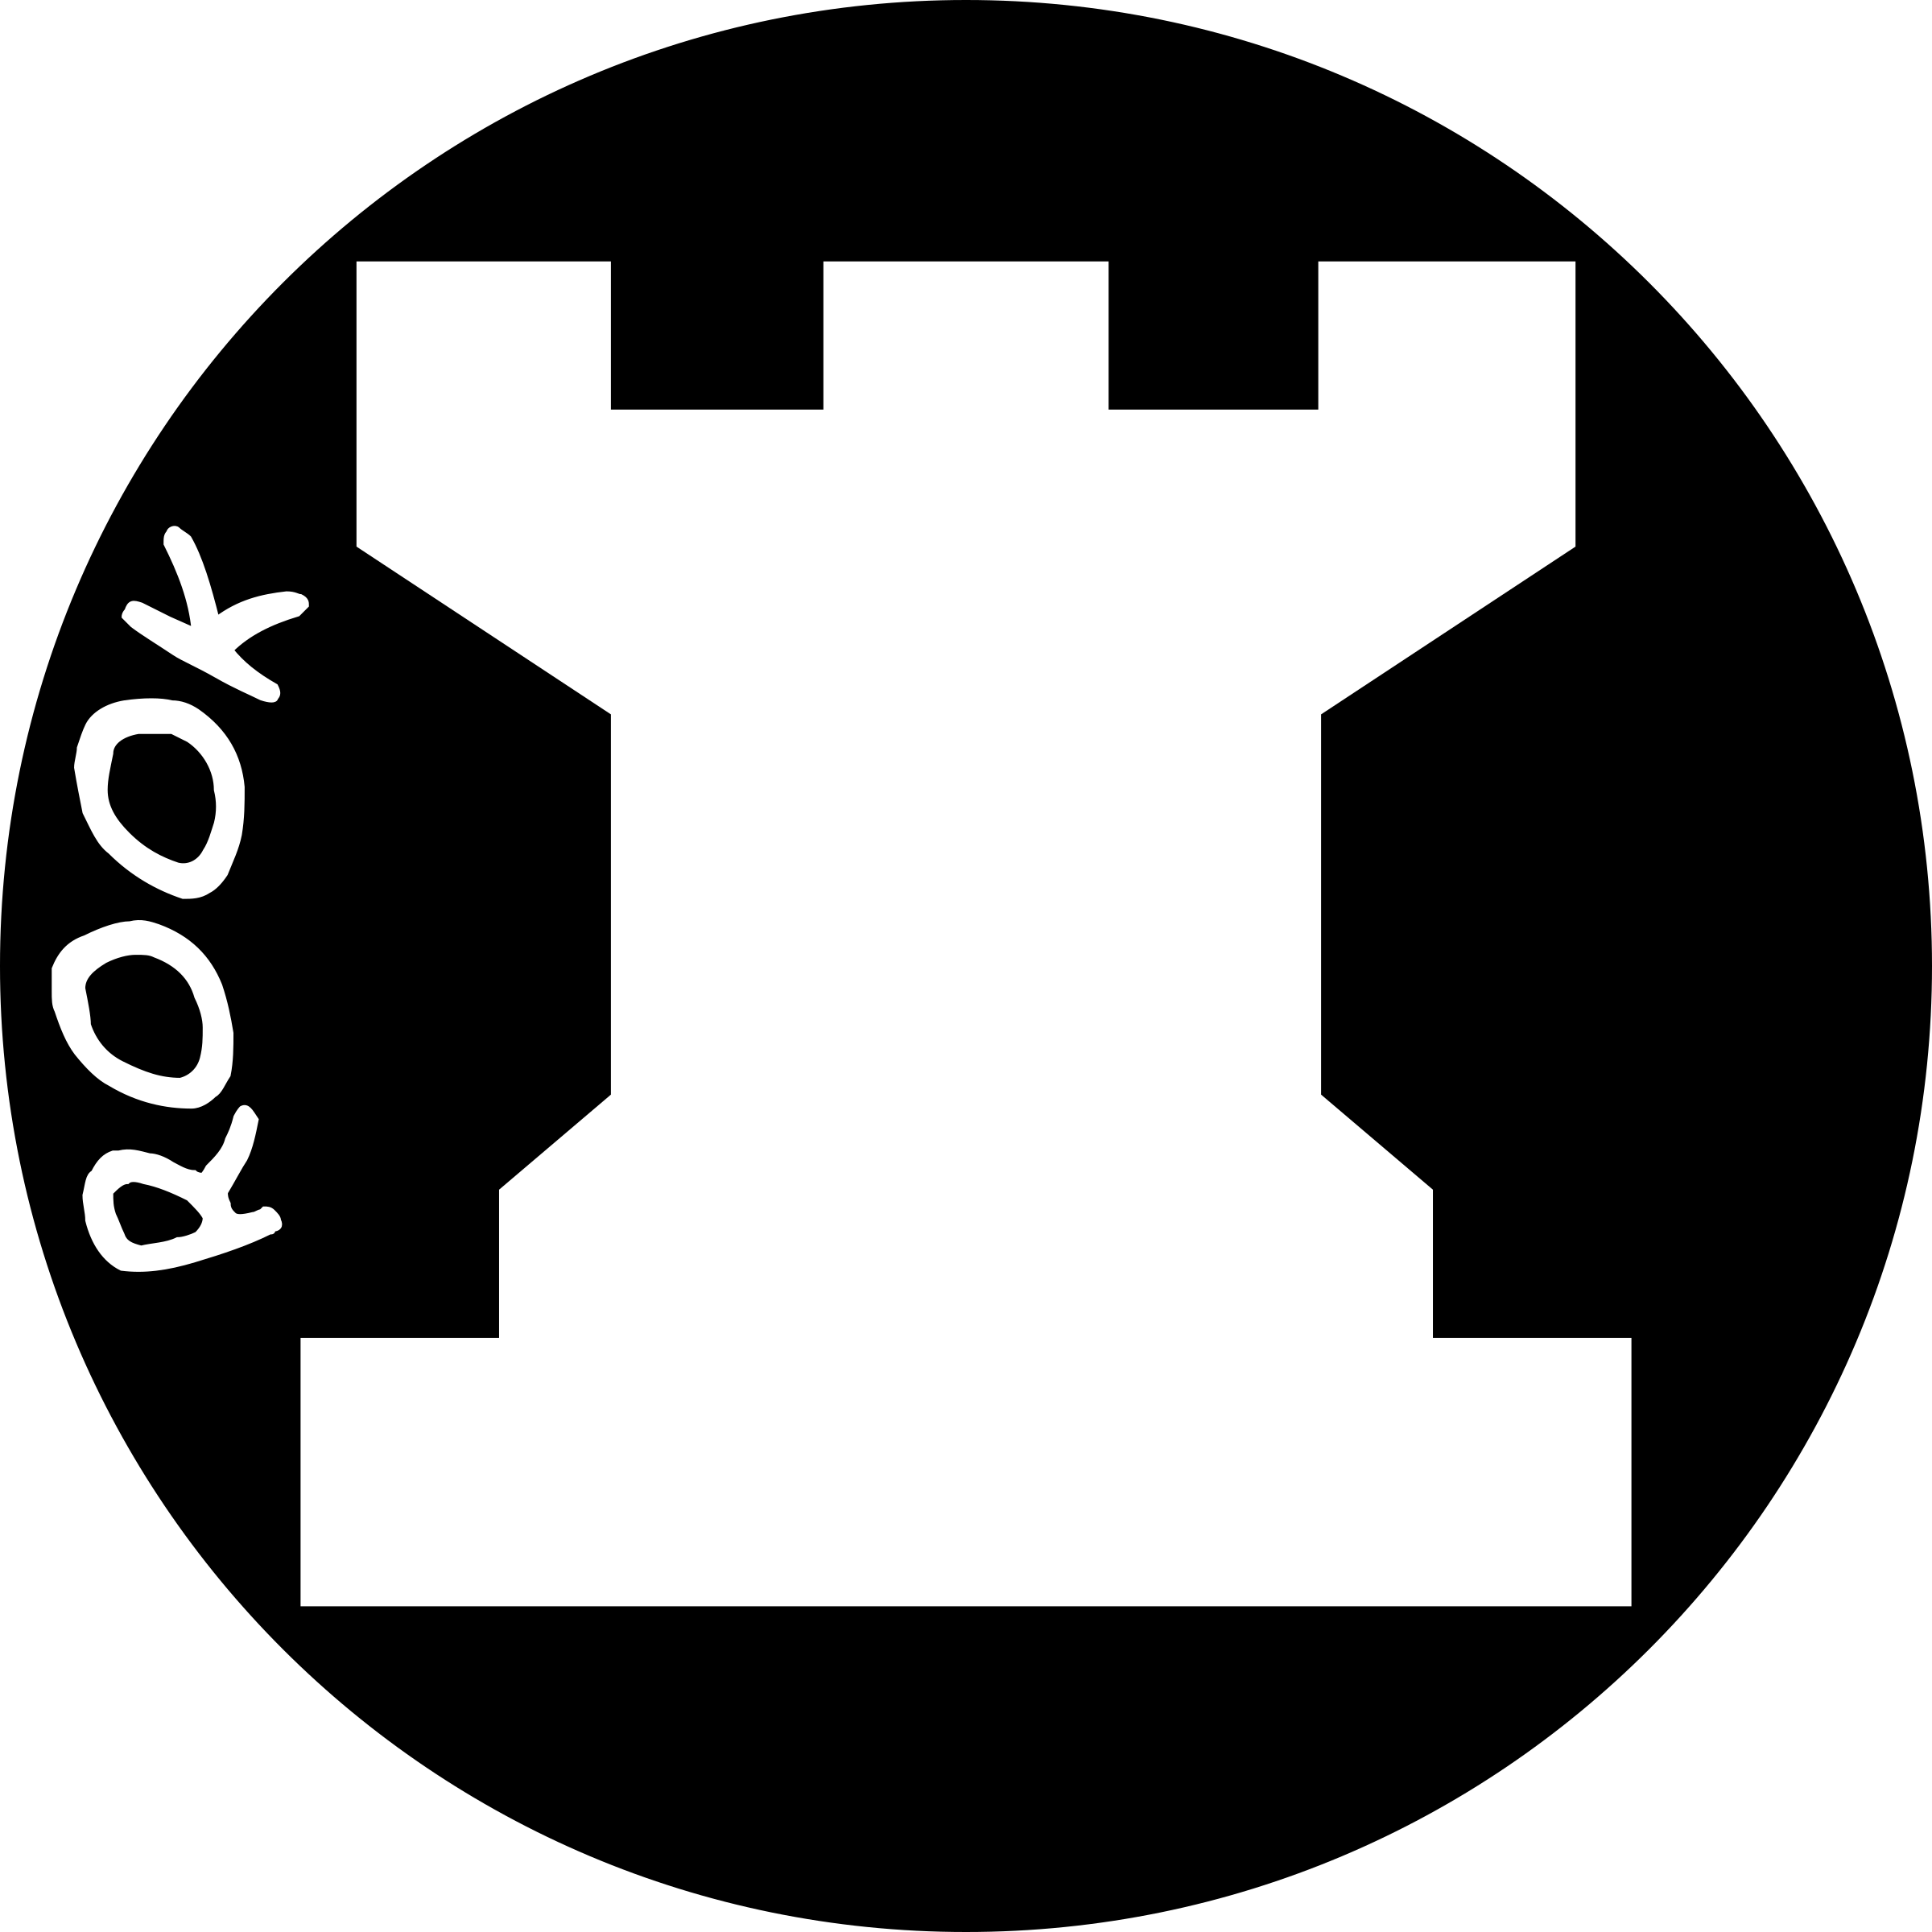 Chess Piece with Name – White Rook by DG-RA